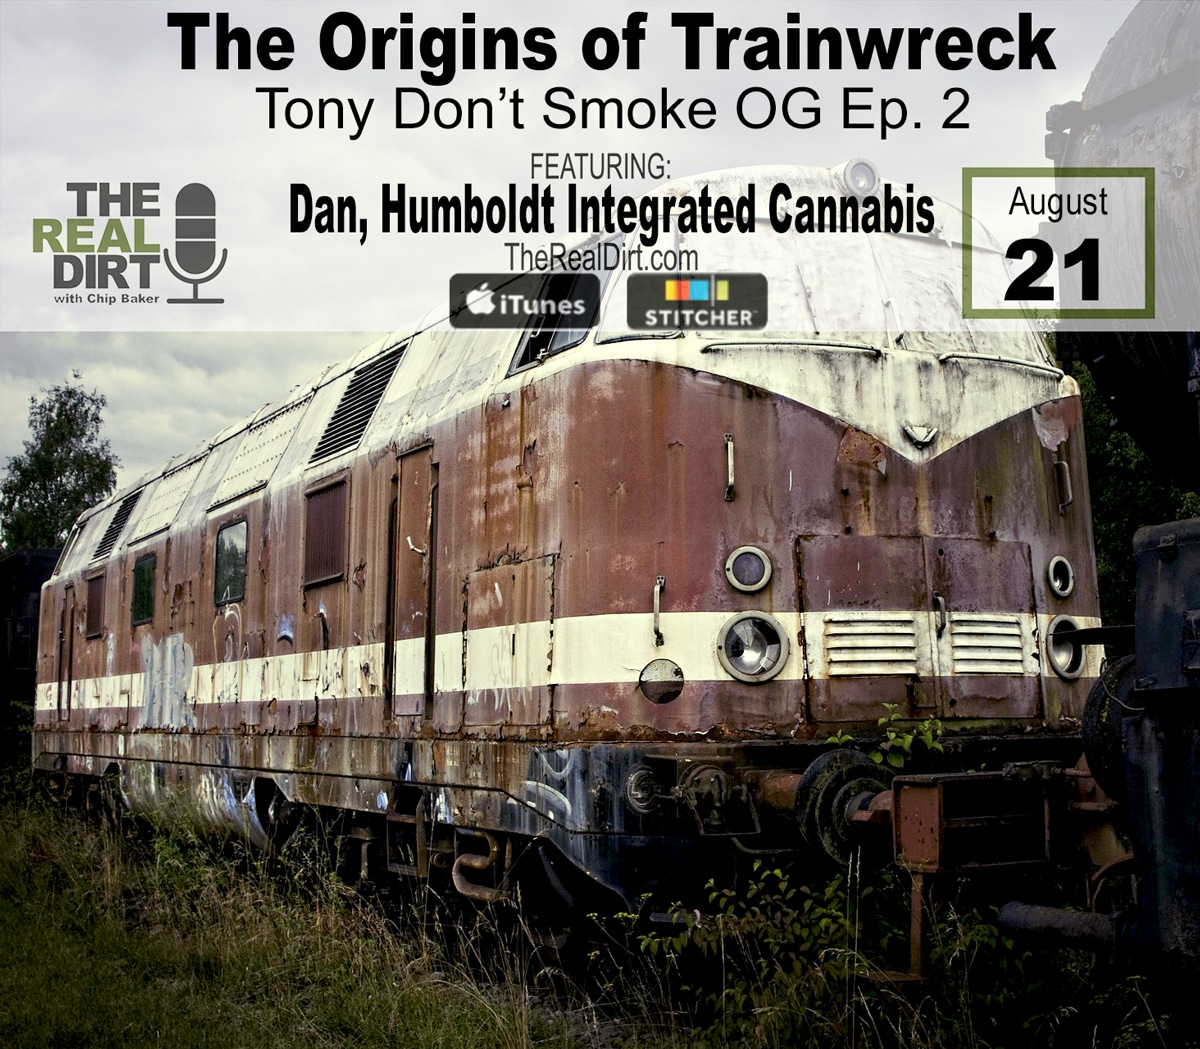 where did the strain trainwreck come from?